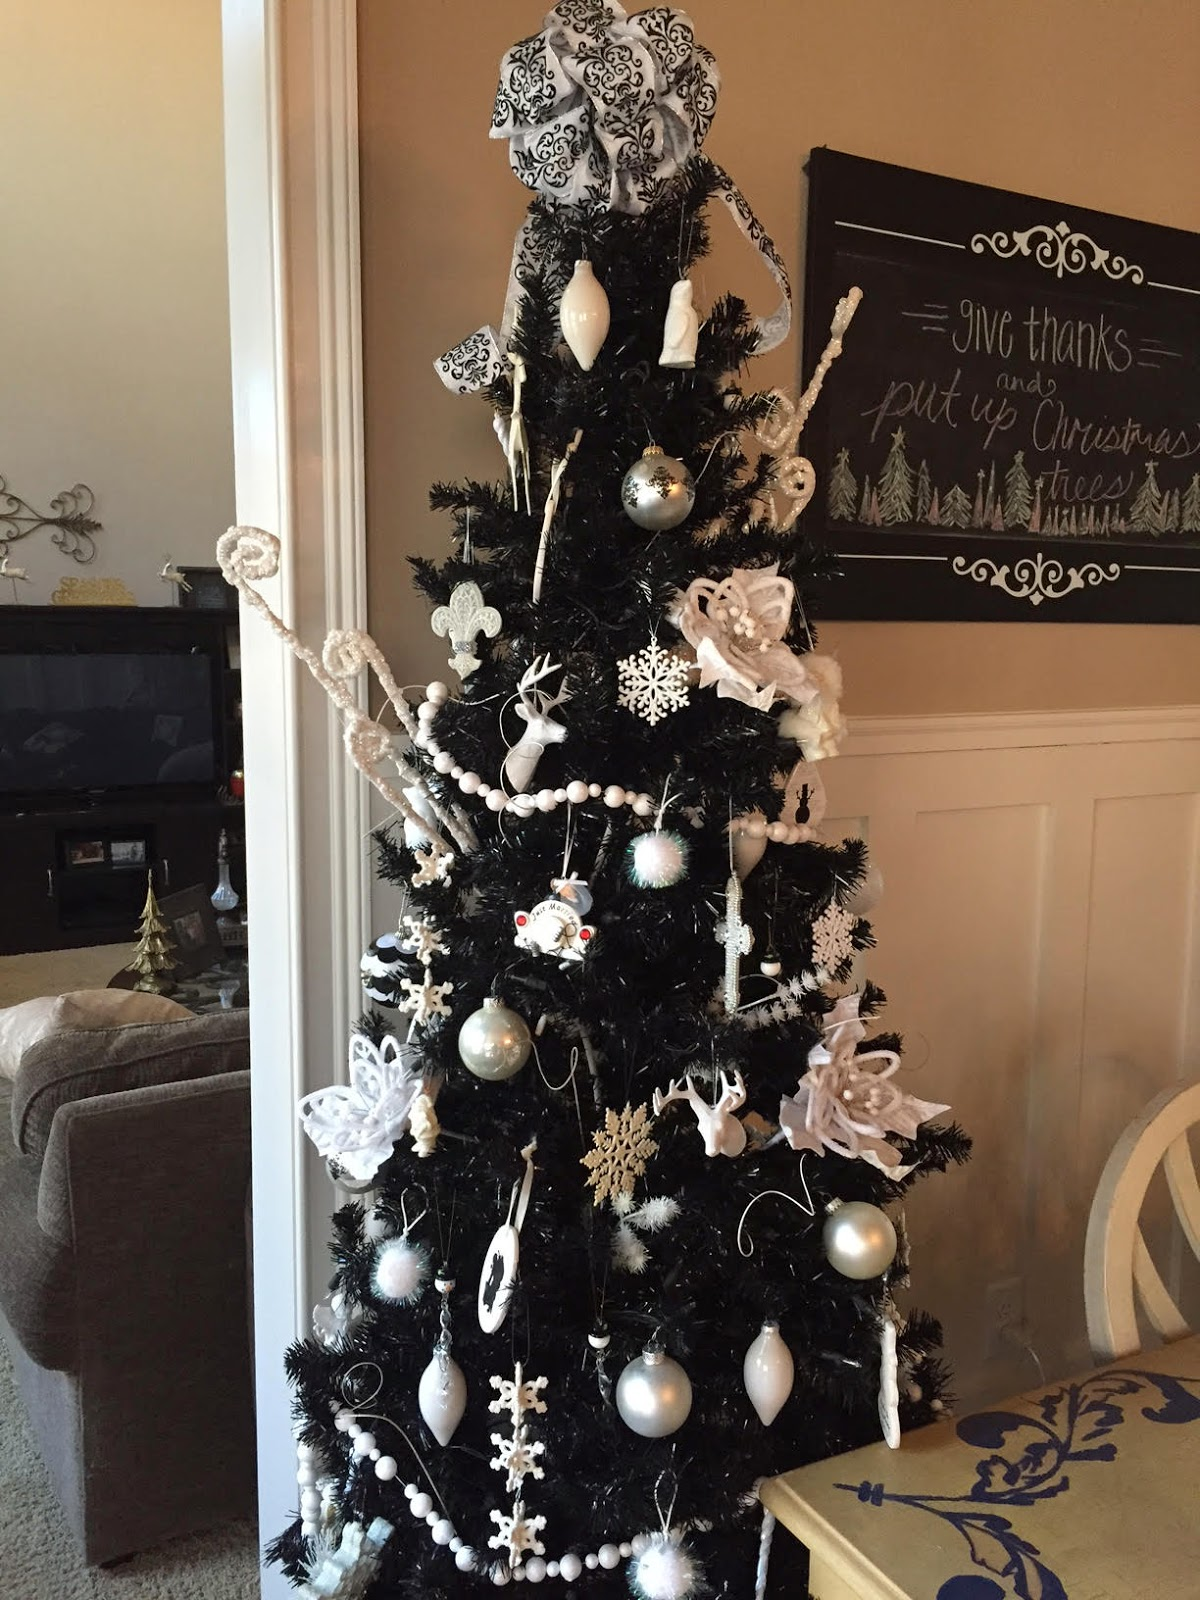 Black Christmas tree with white Christmas decorations.